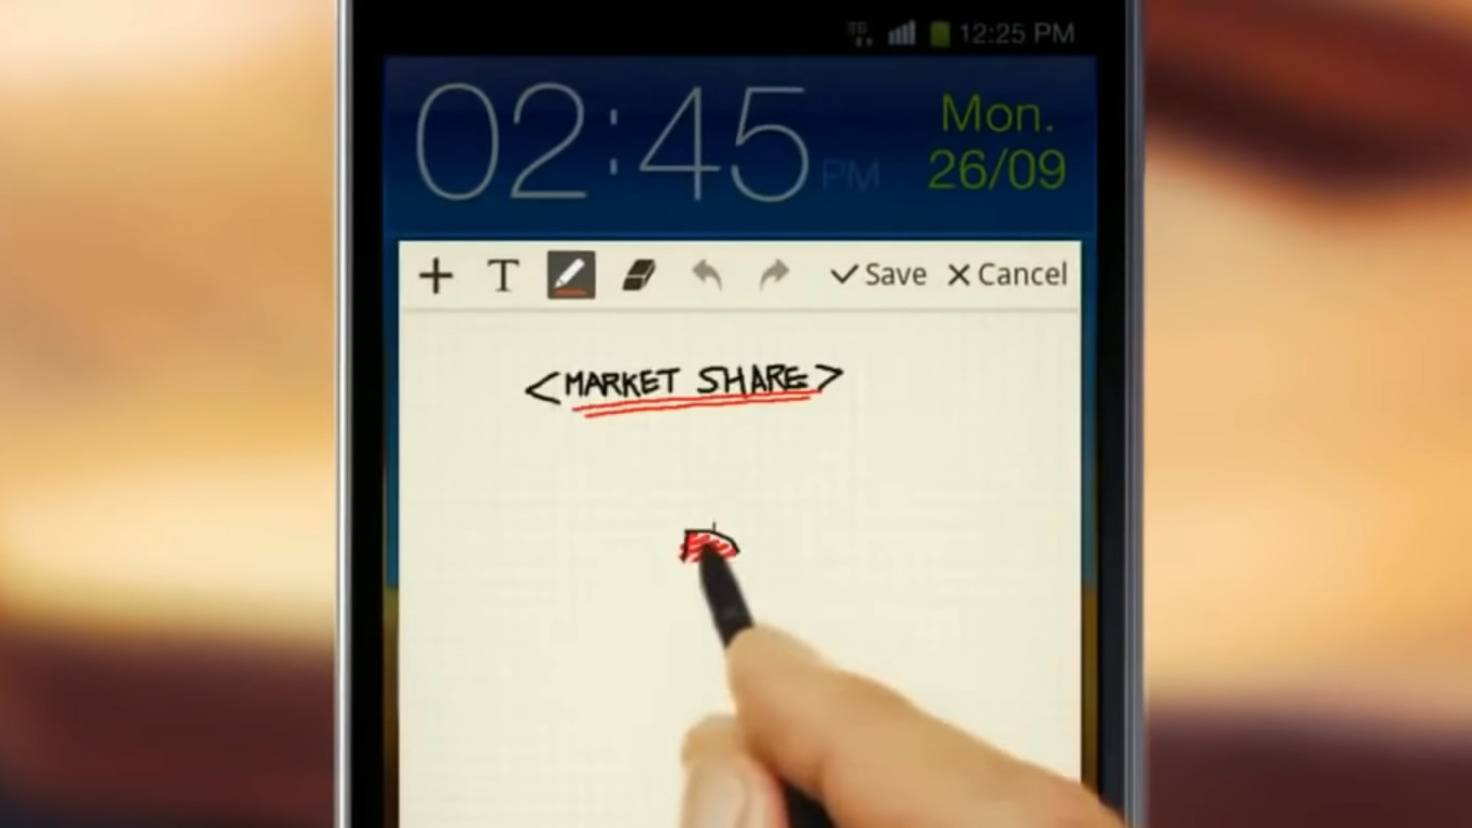 Samsung-Galaxy-Note-1-S-Pen-2